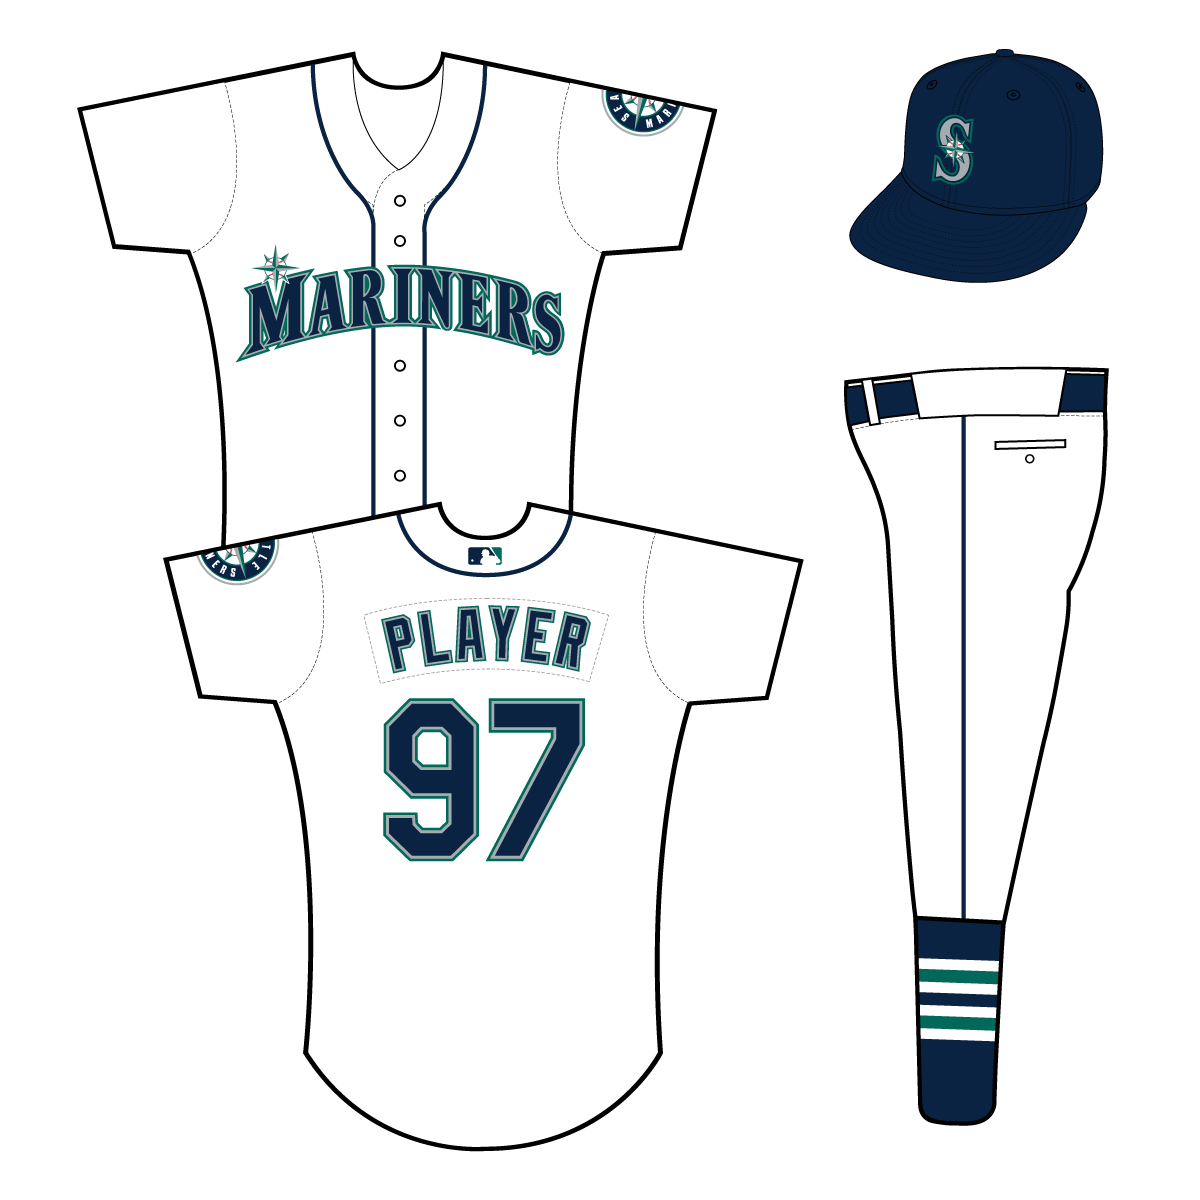 Seattle Mariners Uniform Home Uniform (2015-Pres) - Mariners in navy with silver and green outlines on a white uniform with navy piping, primary logo patch on left sleeve SportsLogos.Net